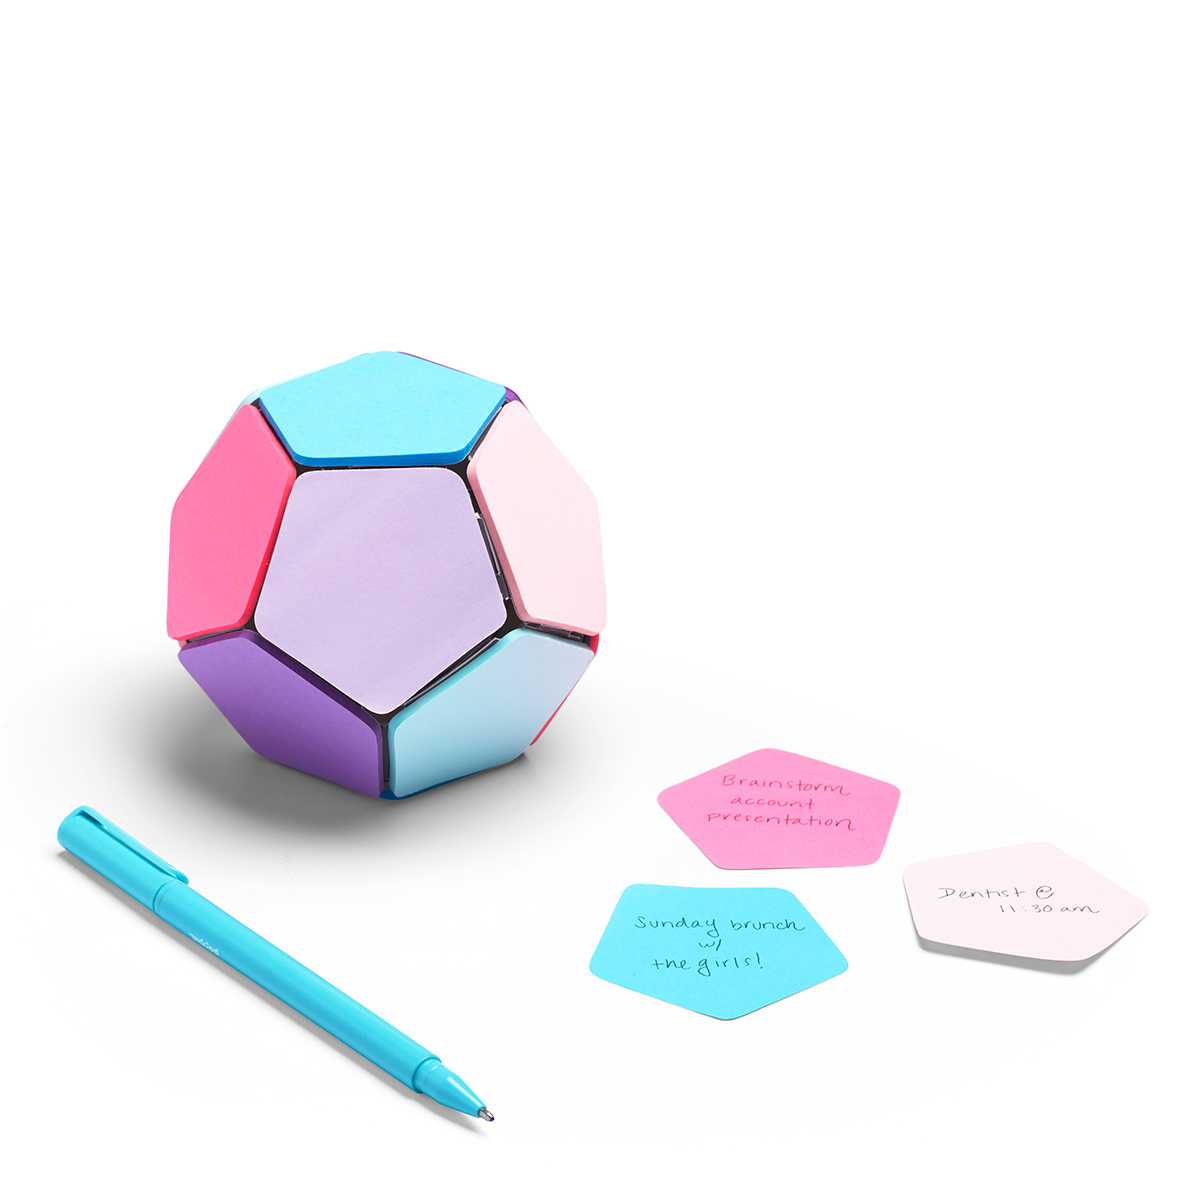 A sphere with sticky notes affixed to it